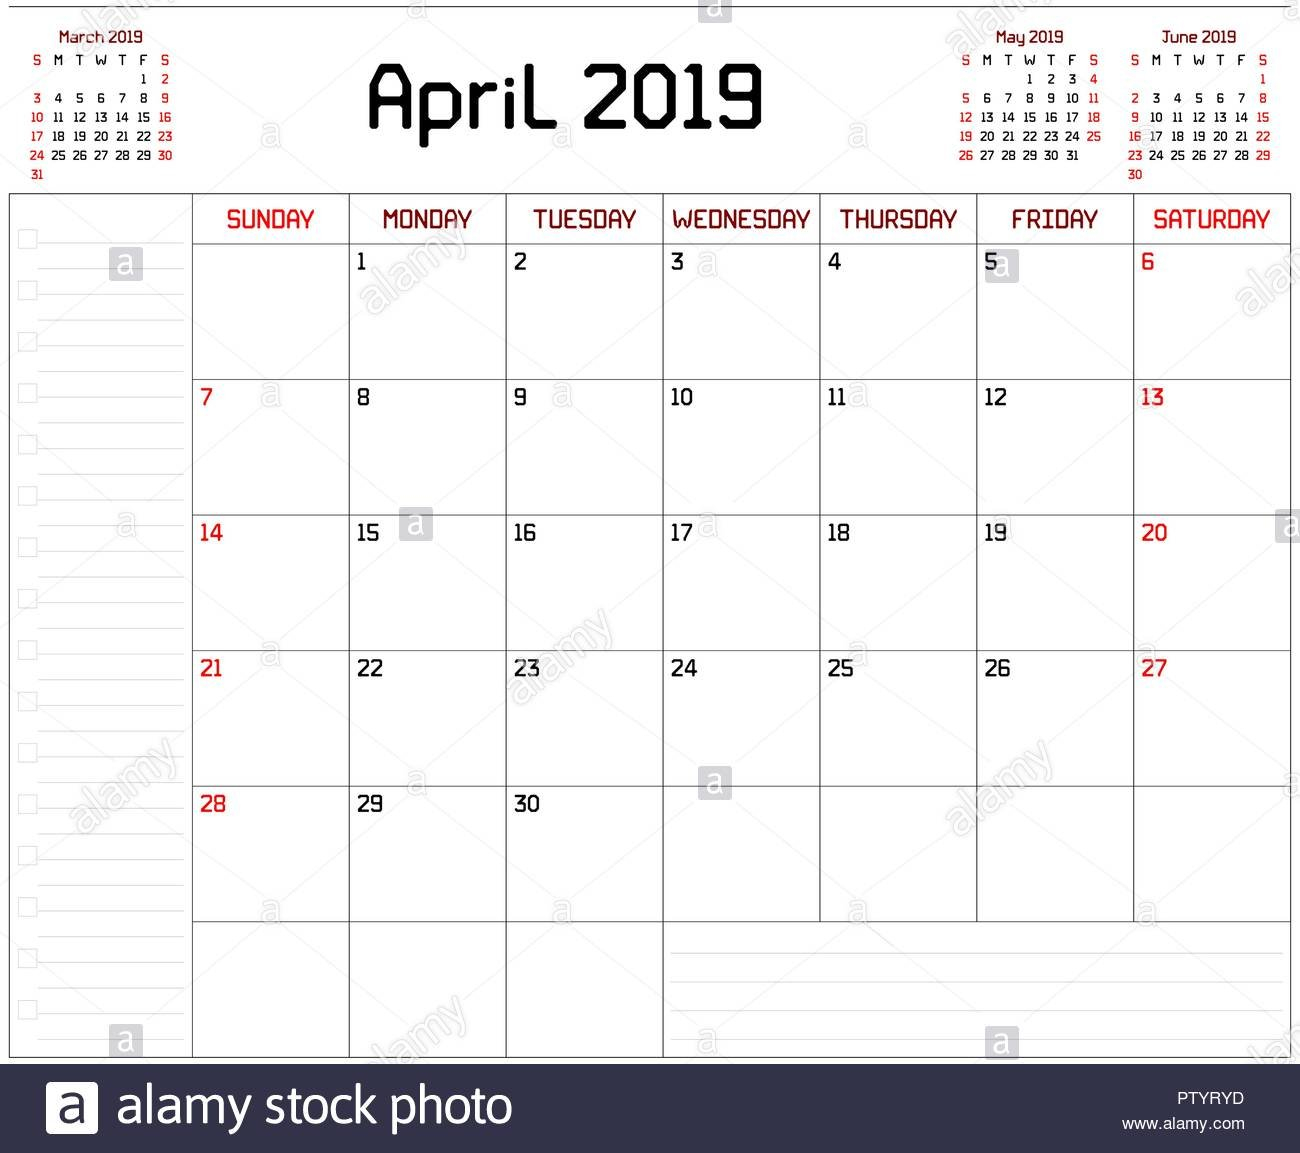 A Monthly Planner Calendar For April 2019 On White Background. A Calendar 2019 With Lines